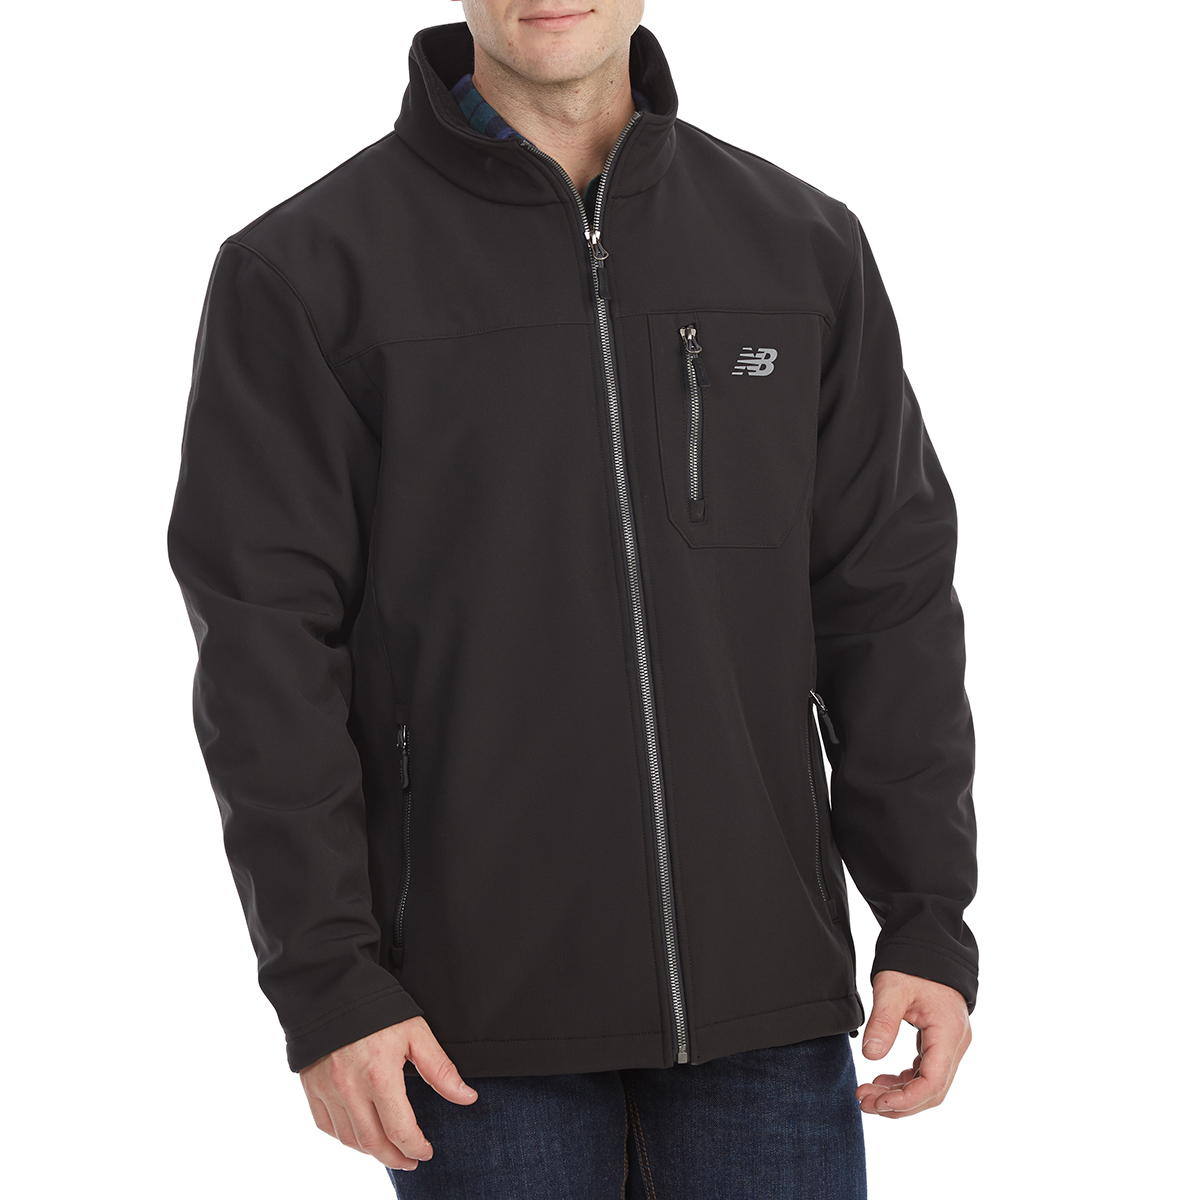 New Balance Men's Softshell Jacket With Chest Pocket - Black, L